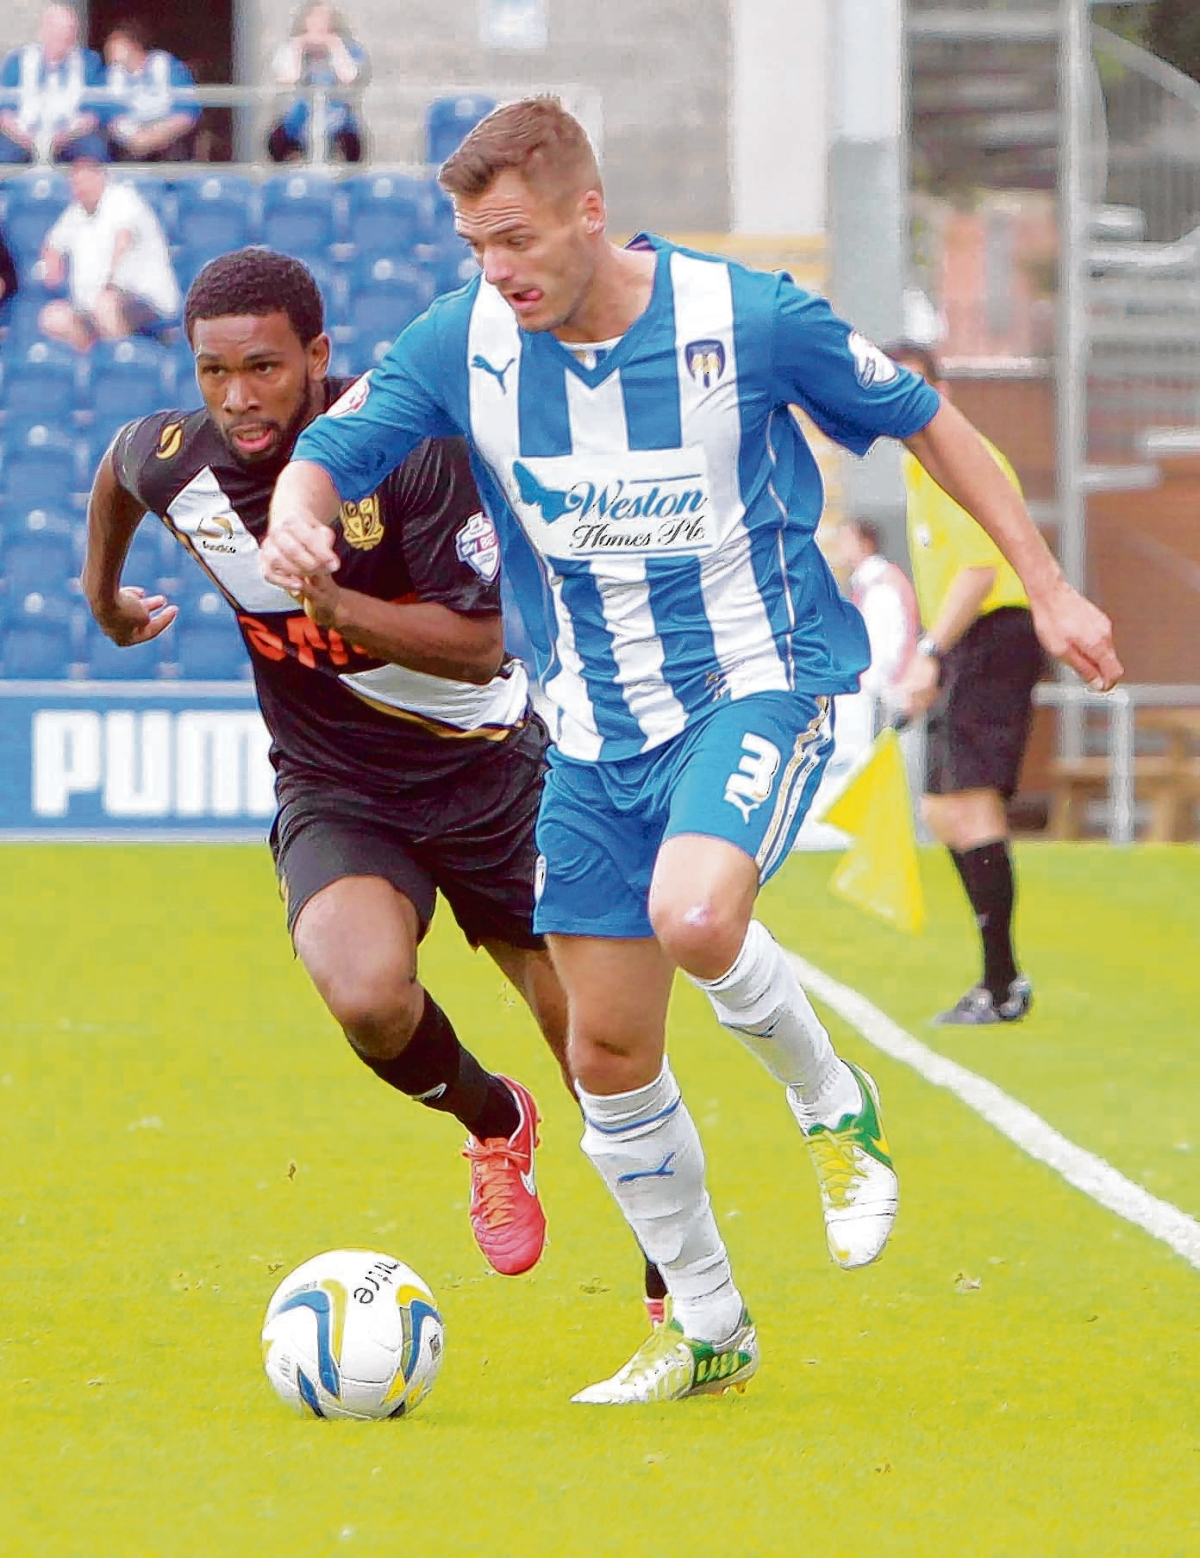 Back in the fold - Ryan Dickson is expected to return to Colchester United's starting line-up for their game against Leyton Orient tomorrow. Picture: NIGEL BROWN (CO82080-05)